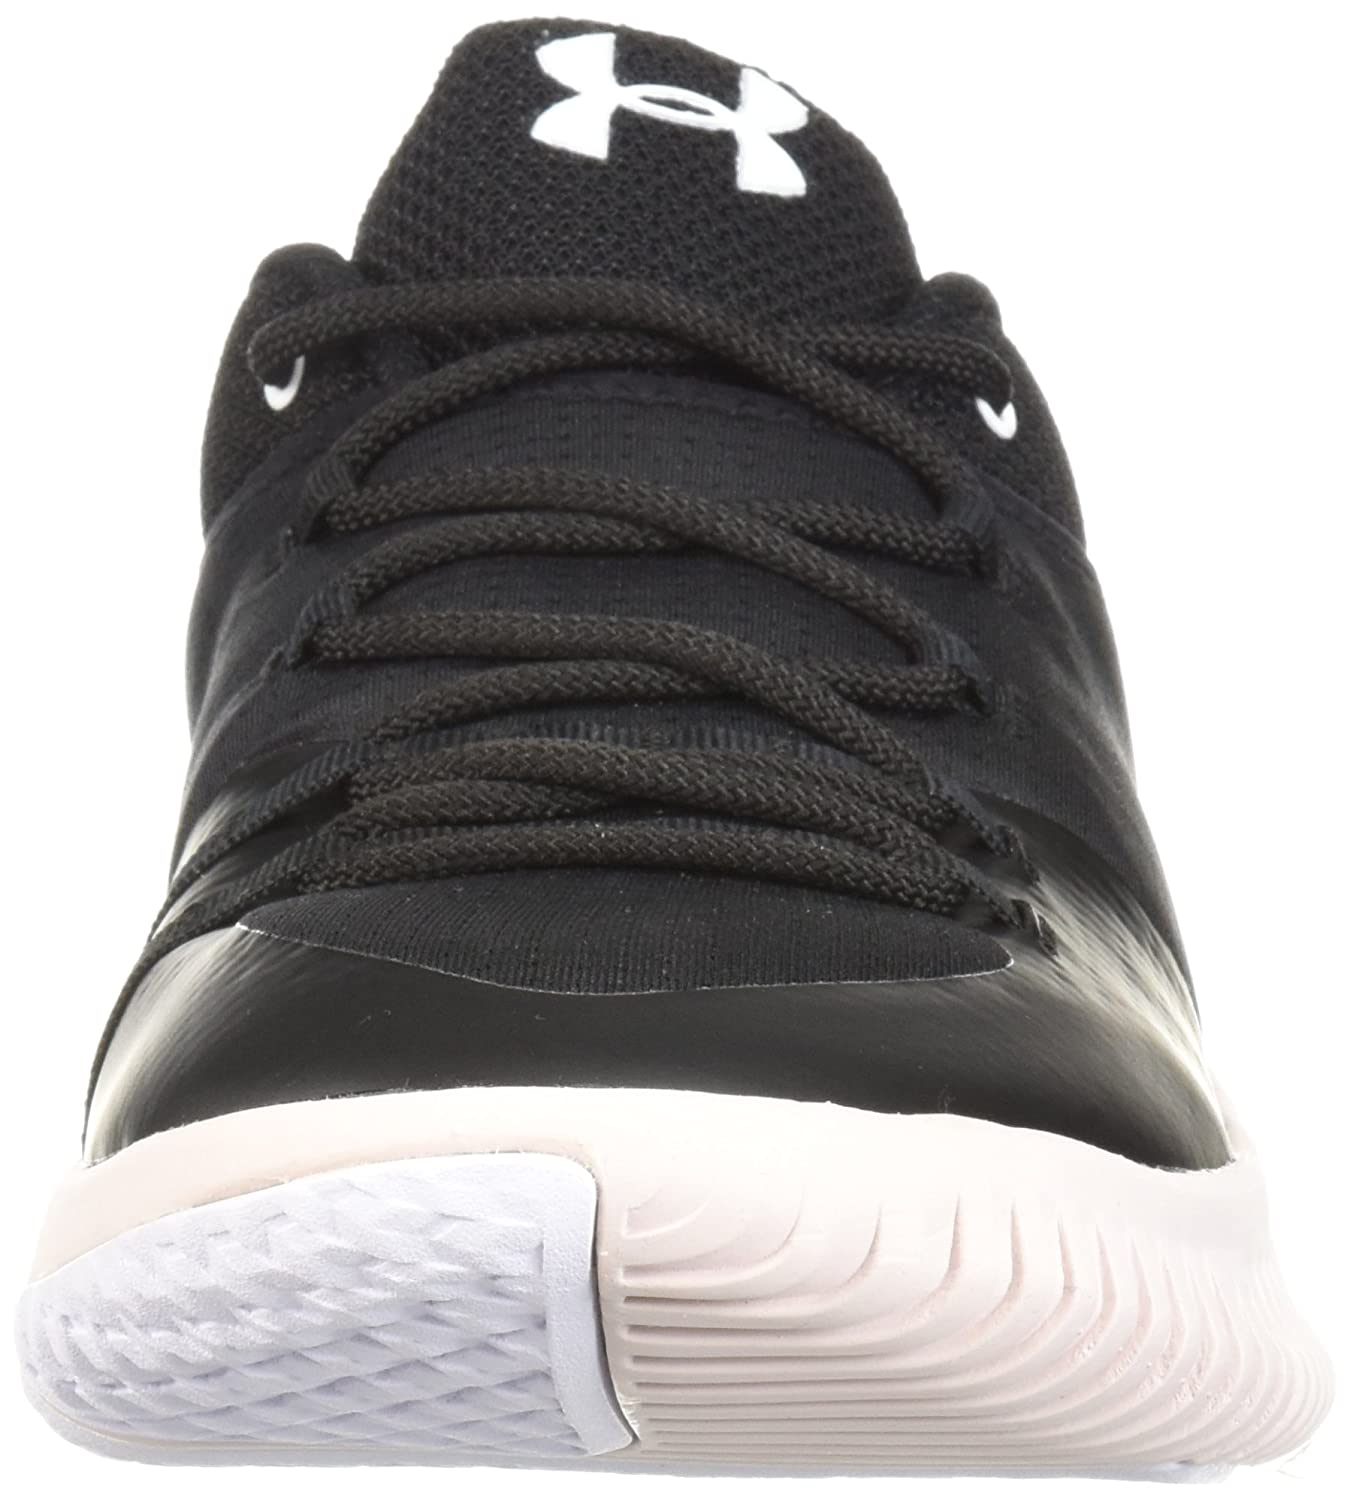 Under Armour Women's Ultimate Speed Sneaker B0725R5Z5L 10 M US|Black (001)/French Gray